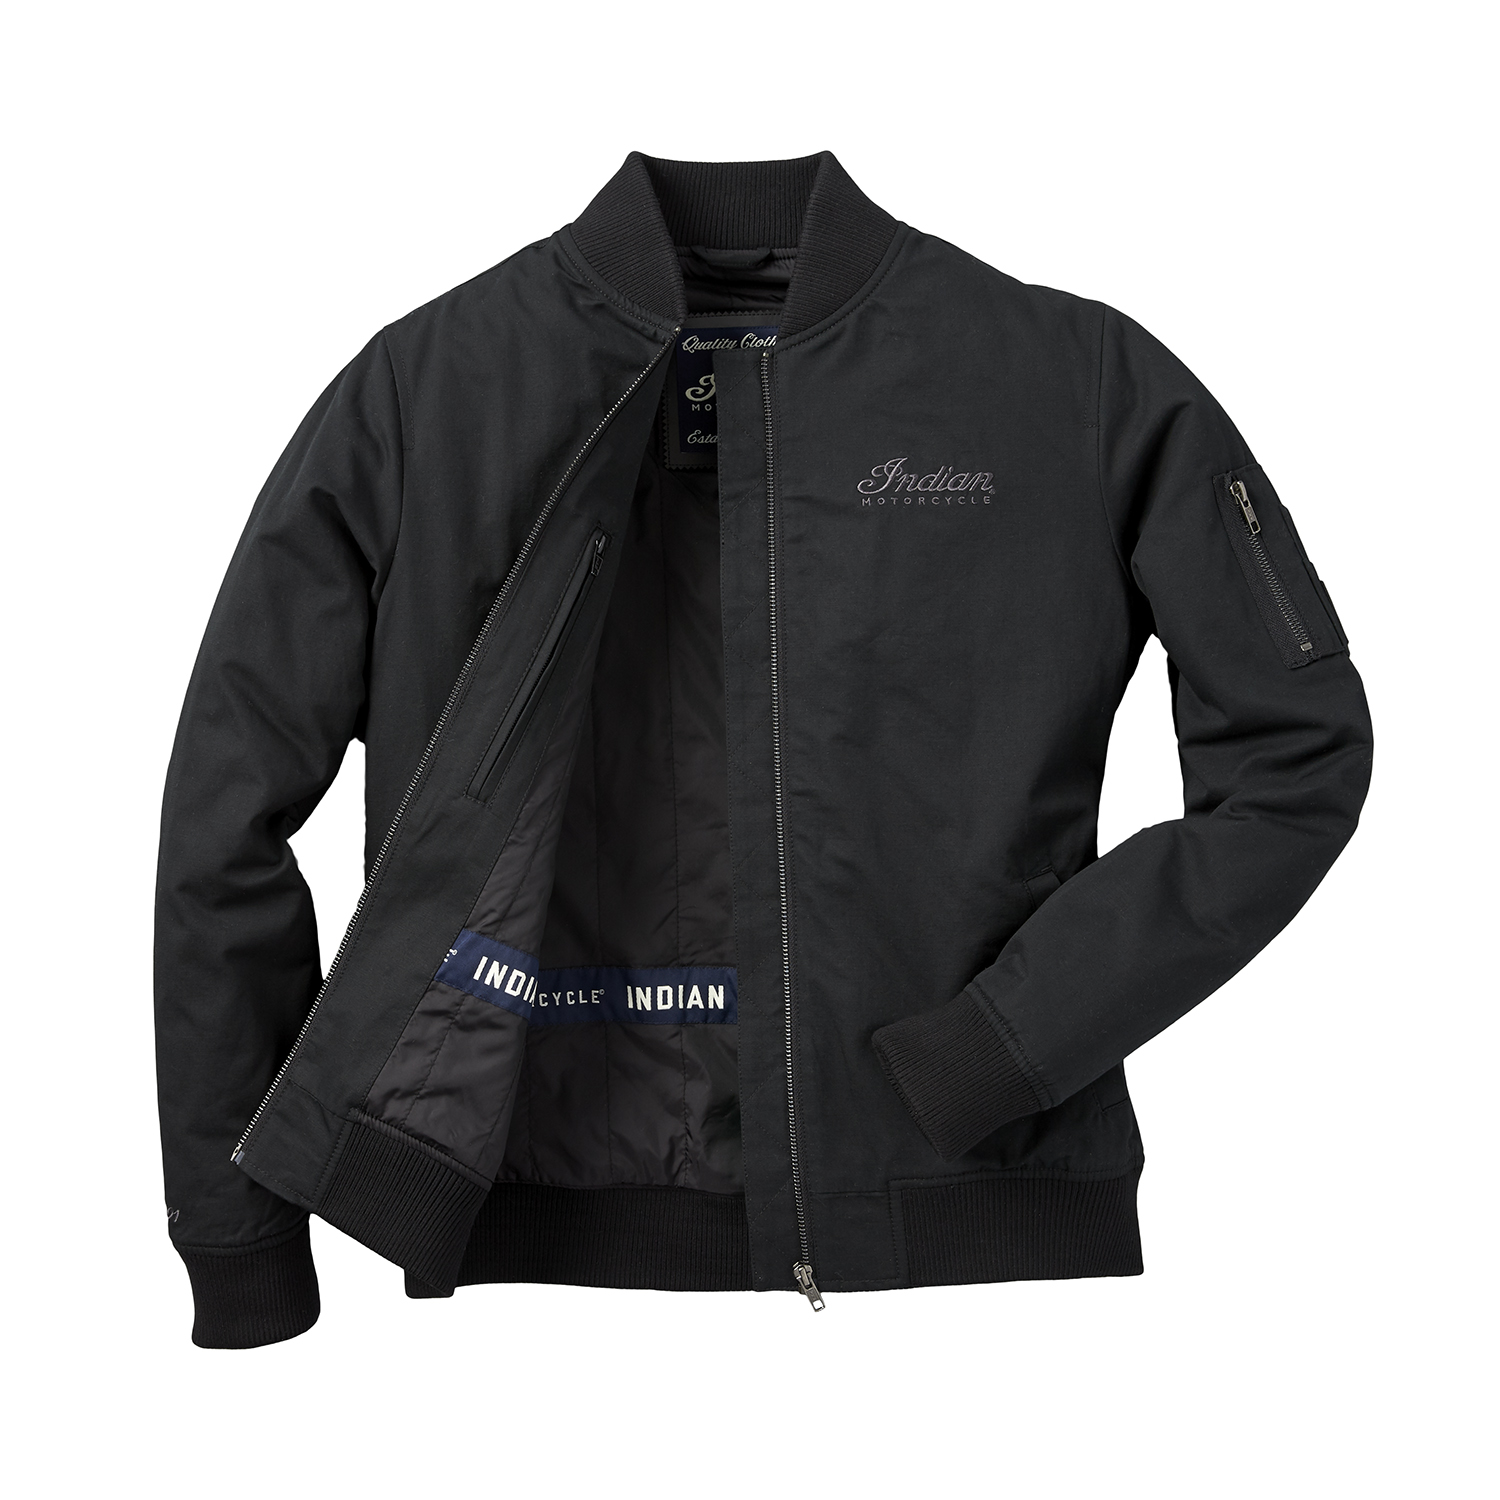 miniature 10 - Indian Motorcycle Women's Casual Bomber Jacket, Black